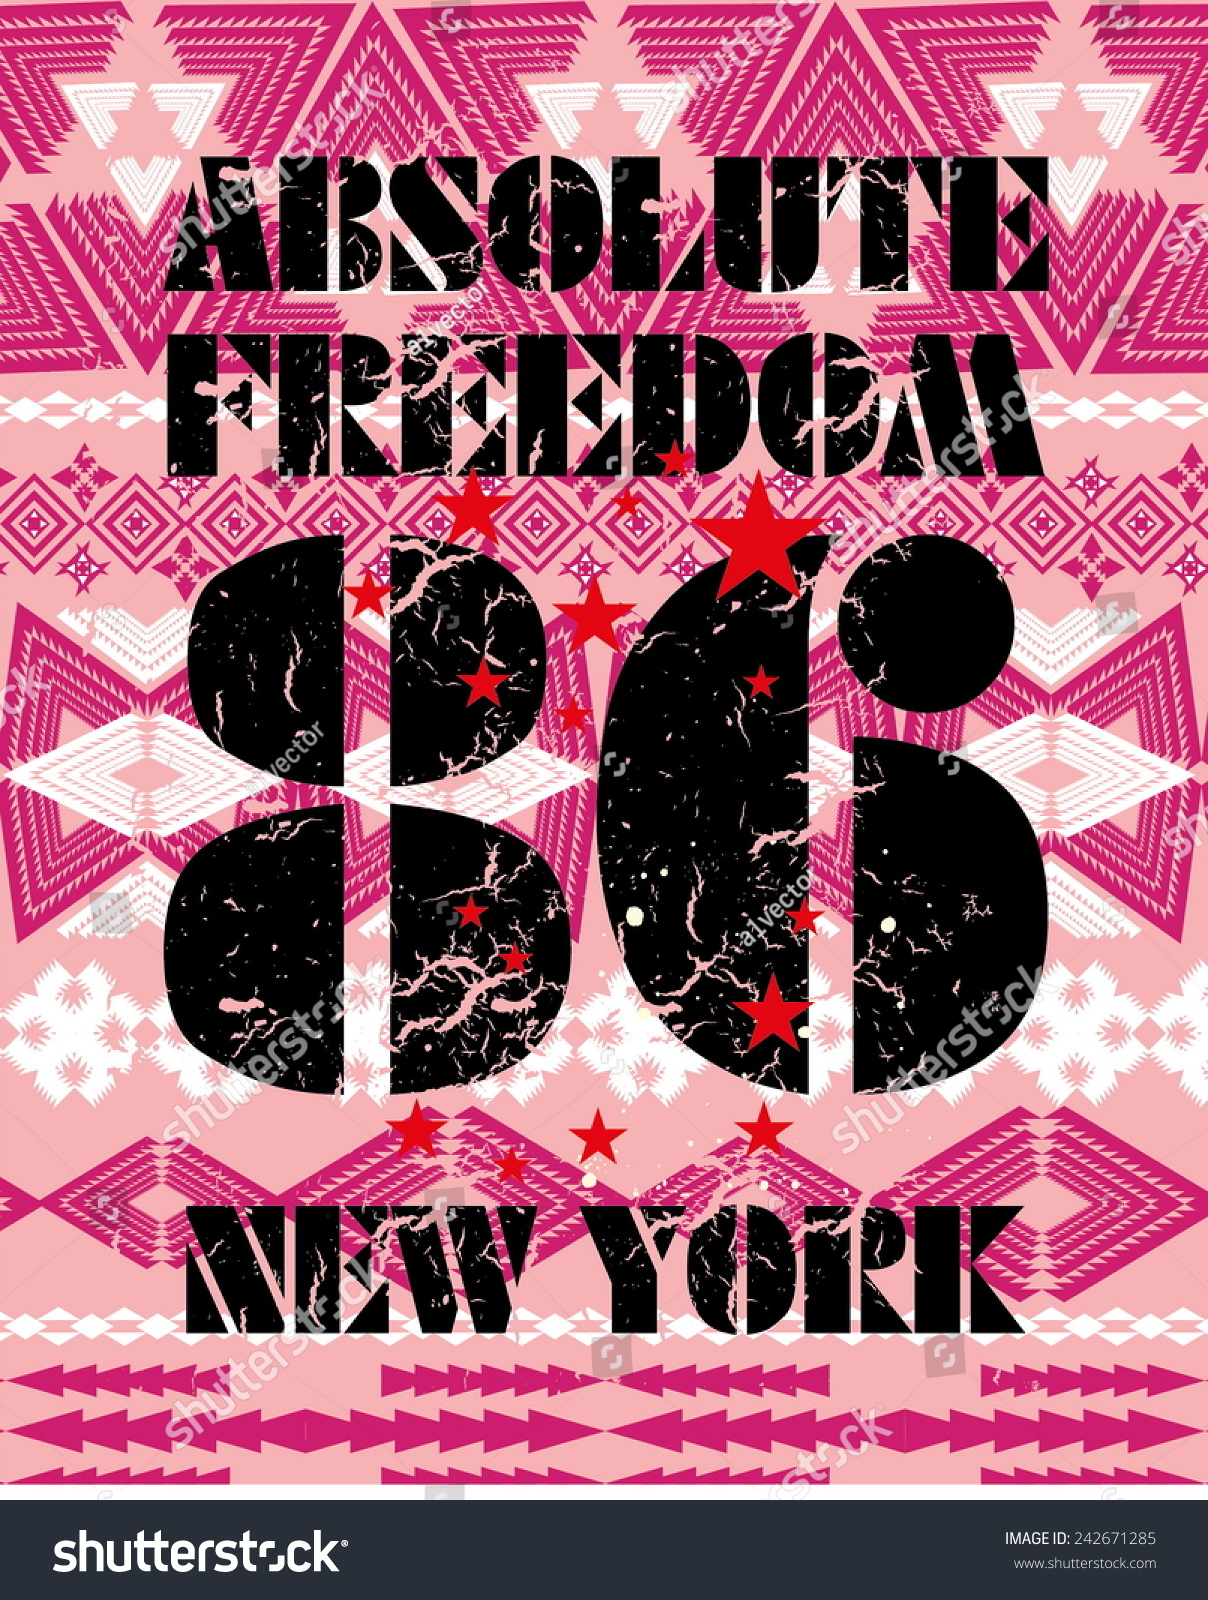 Absolute freedom graphic design vector art 242671285 shutterstock - Treehouses the absolute freedom ...